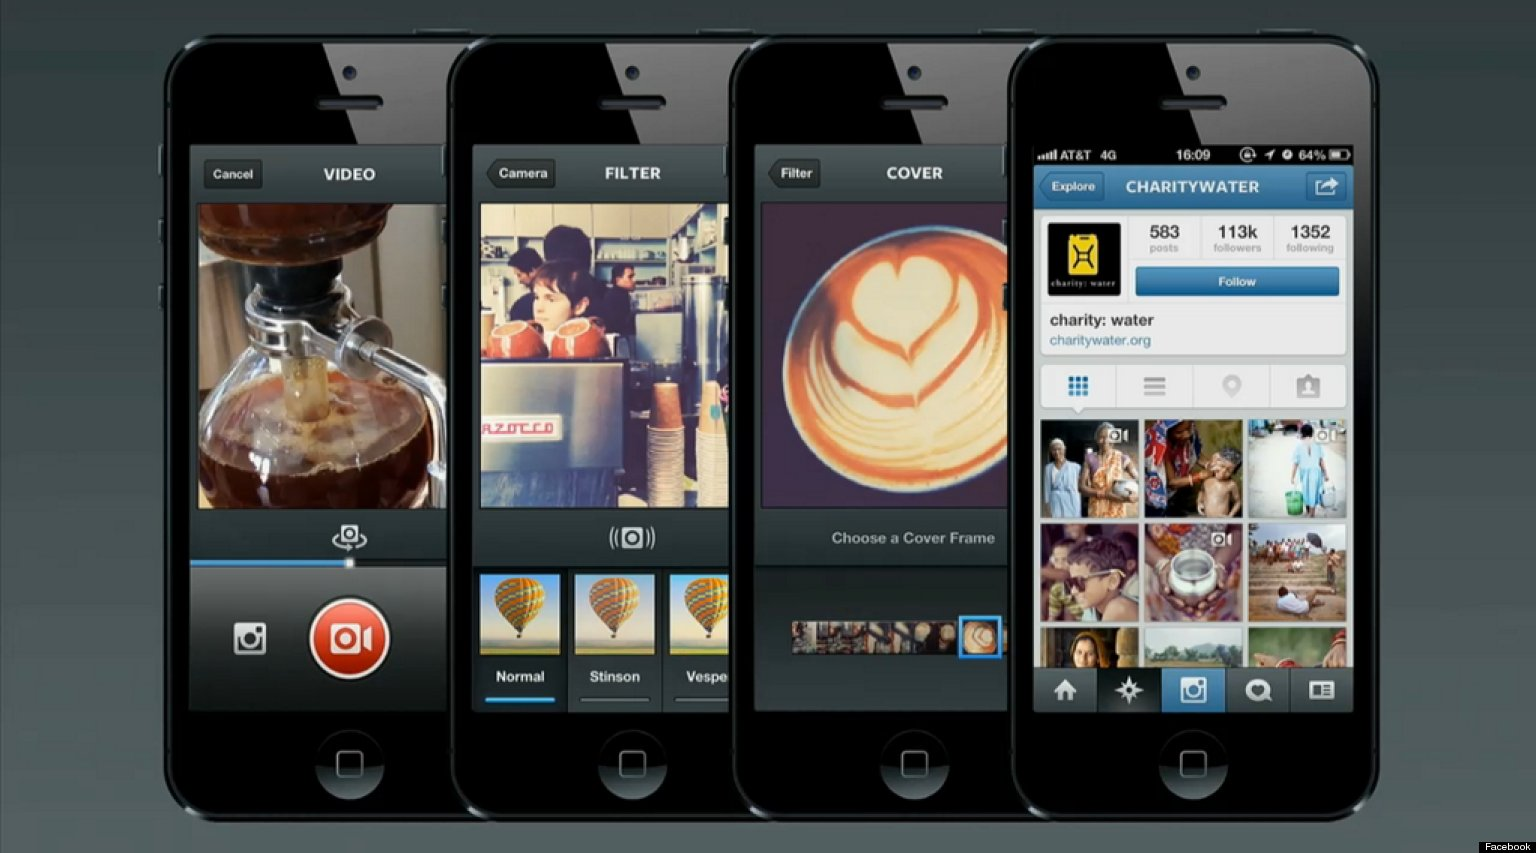 Video On Instagram: Facebook Adds 15-Second Videos To